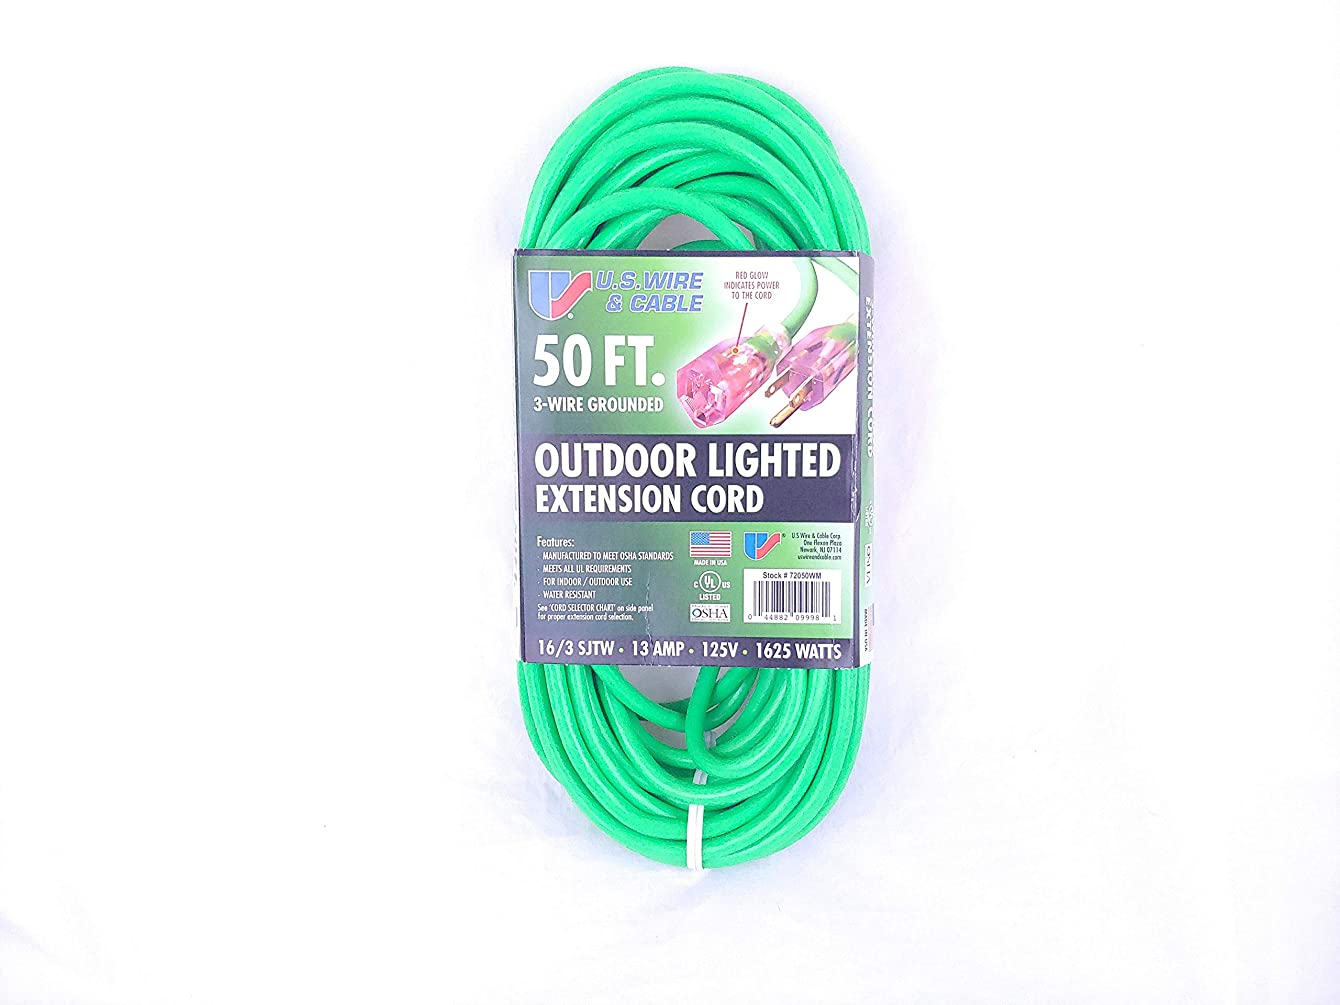 U.S. Wire & Cable Outdoor Lighted Extension Cord 50 FT. 3-Wire Grounded 16/3 SJTW 13 Amp 125V 1625 Watts